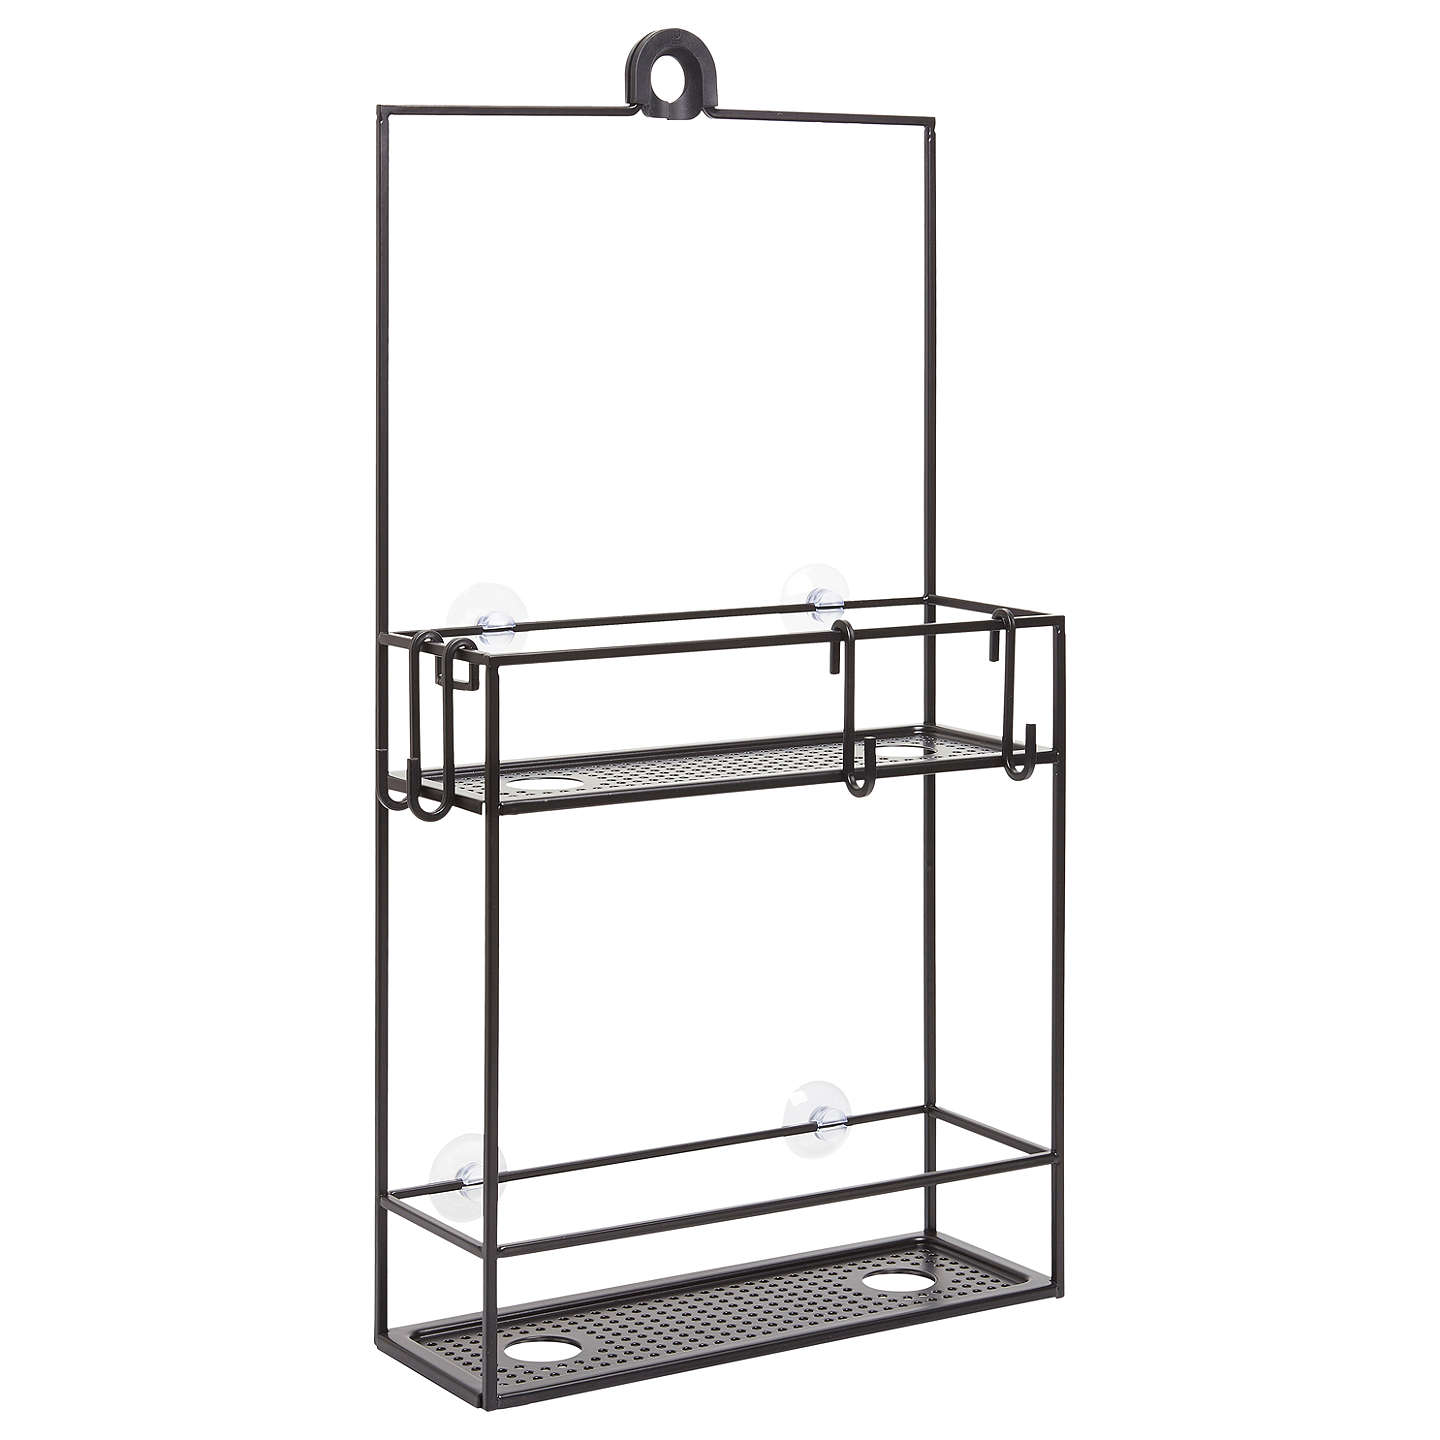 Umbra Cubiko Hanging Shower Storage Caddy, Black at John Lewis